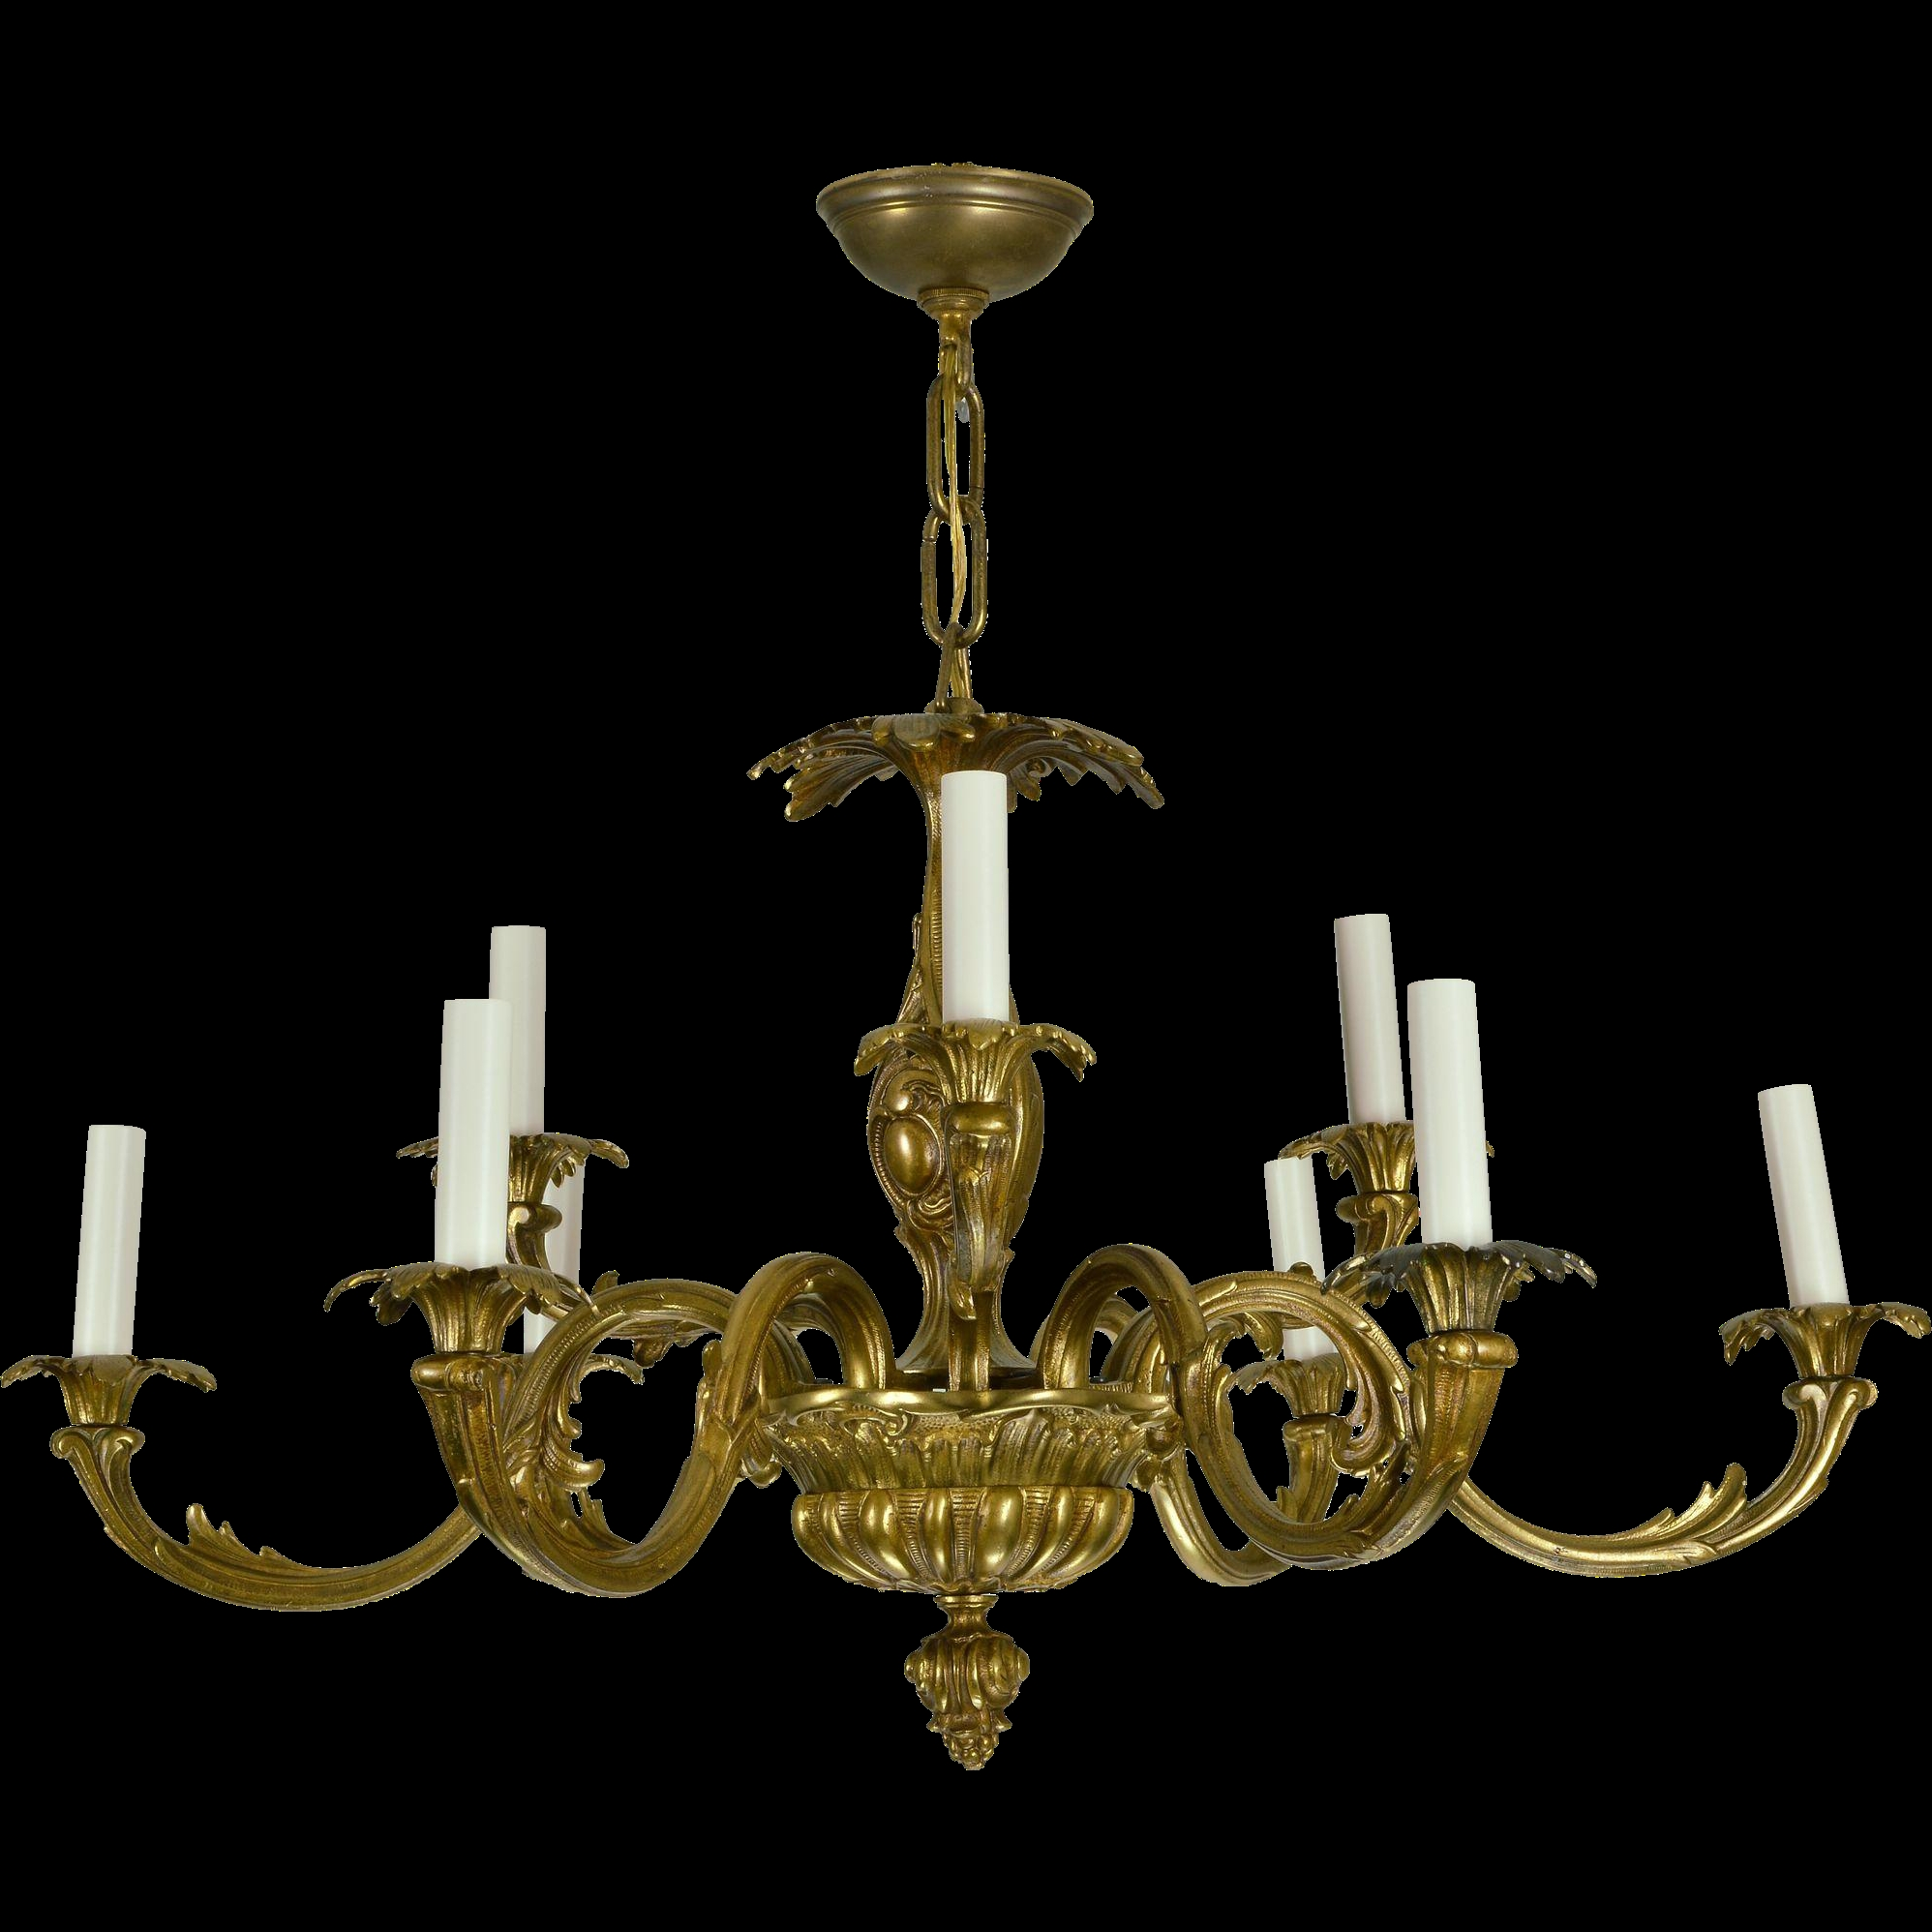 Vintage Brass French Baroque Chandelier From Tolw On Ru Lane Regarding Baroque Chandelier (Image 15 of 15)